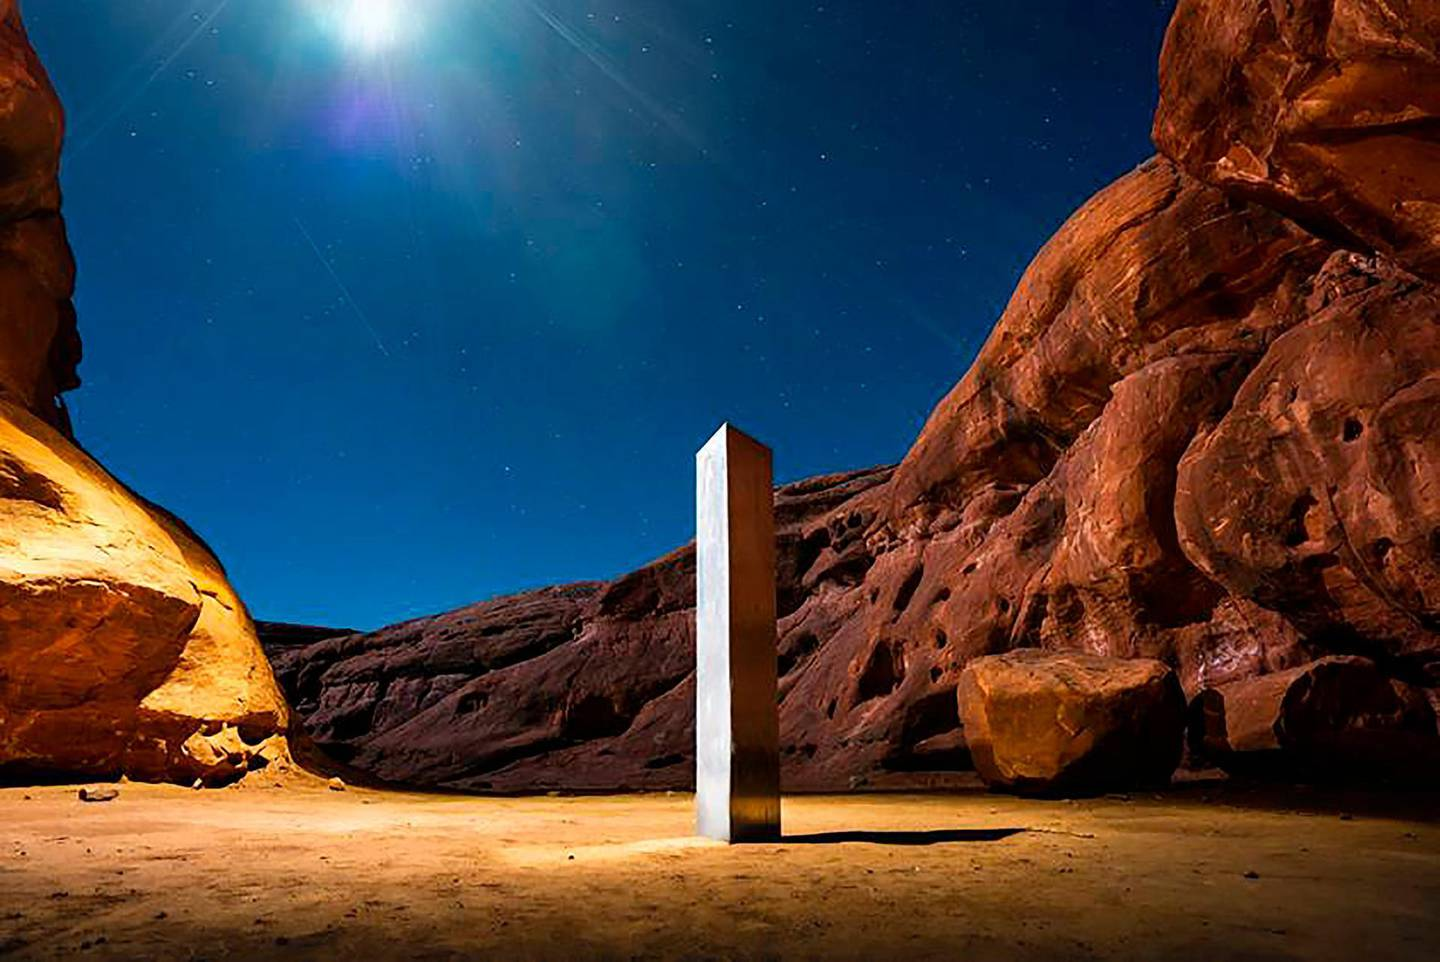 AThis Nov. 27, 2020 photo by Terrance Siemon shows a monolith that was placed in a red-rock desert in an undisclosed location in San Juan County southeastern Utah. New clues have surfaced in the disappearance of the gleaming monolith in Utah that seemed to melt away as mysteriously as it appeared in the red-rock desert. A Colorado photographer told a TV station in Salt Lake City that he saw four men push over the hollow, stainless steel structure in Utah on Friday night. (Terrance Siemon via AP)